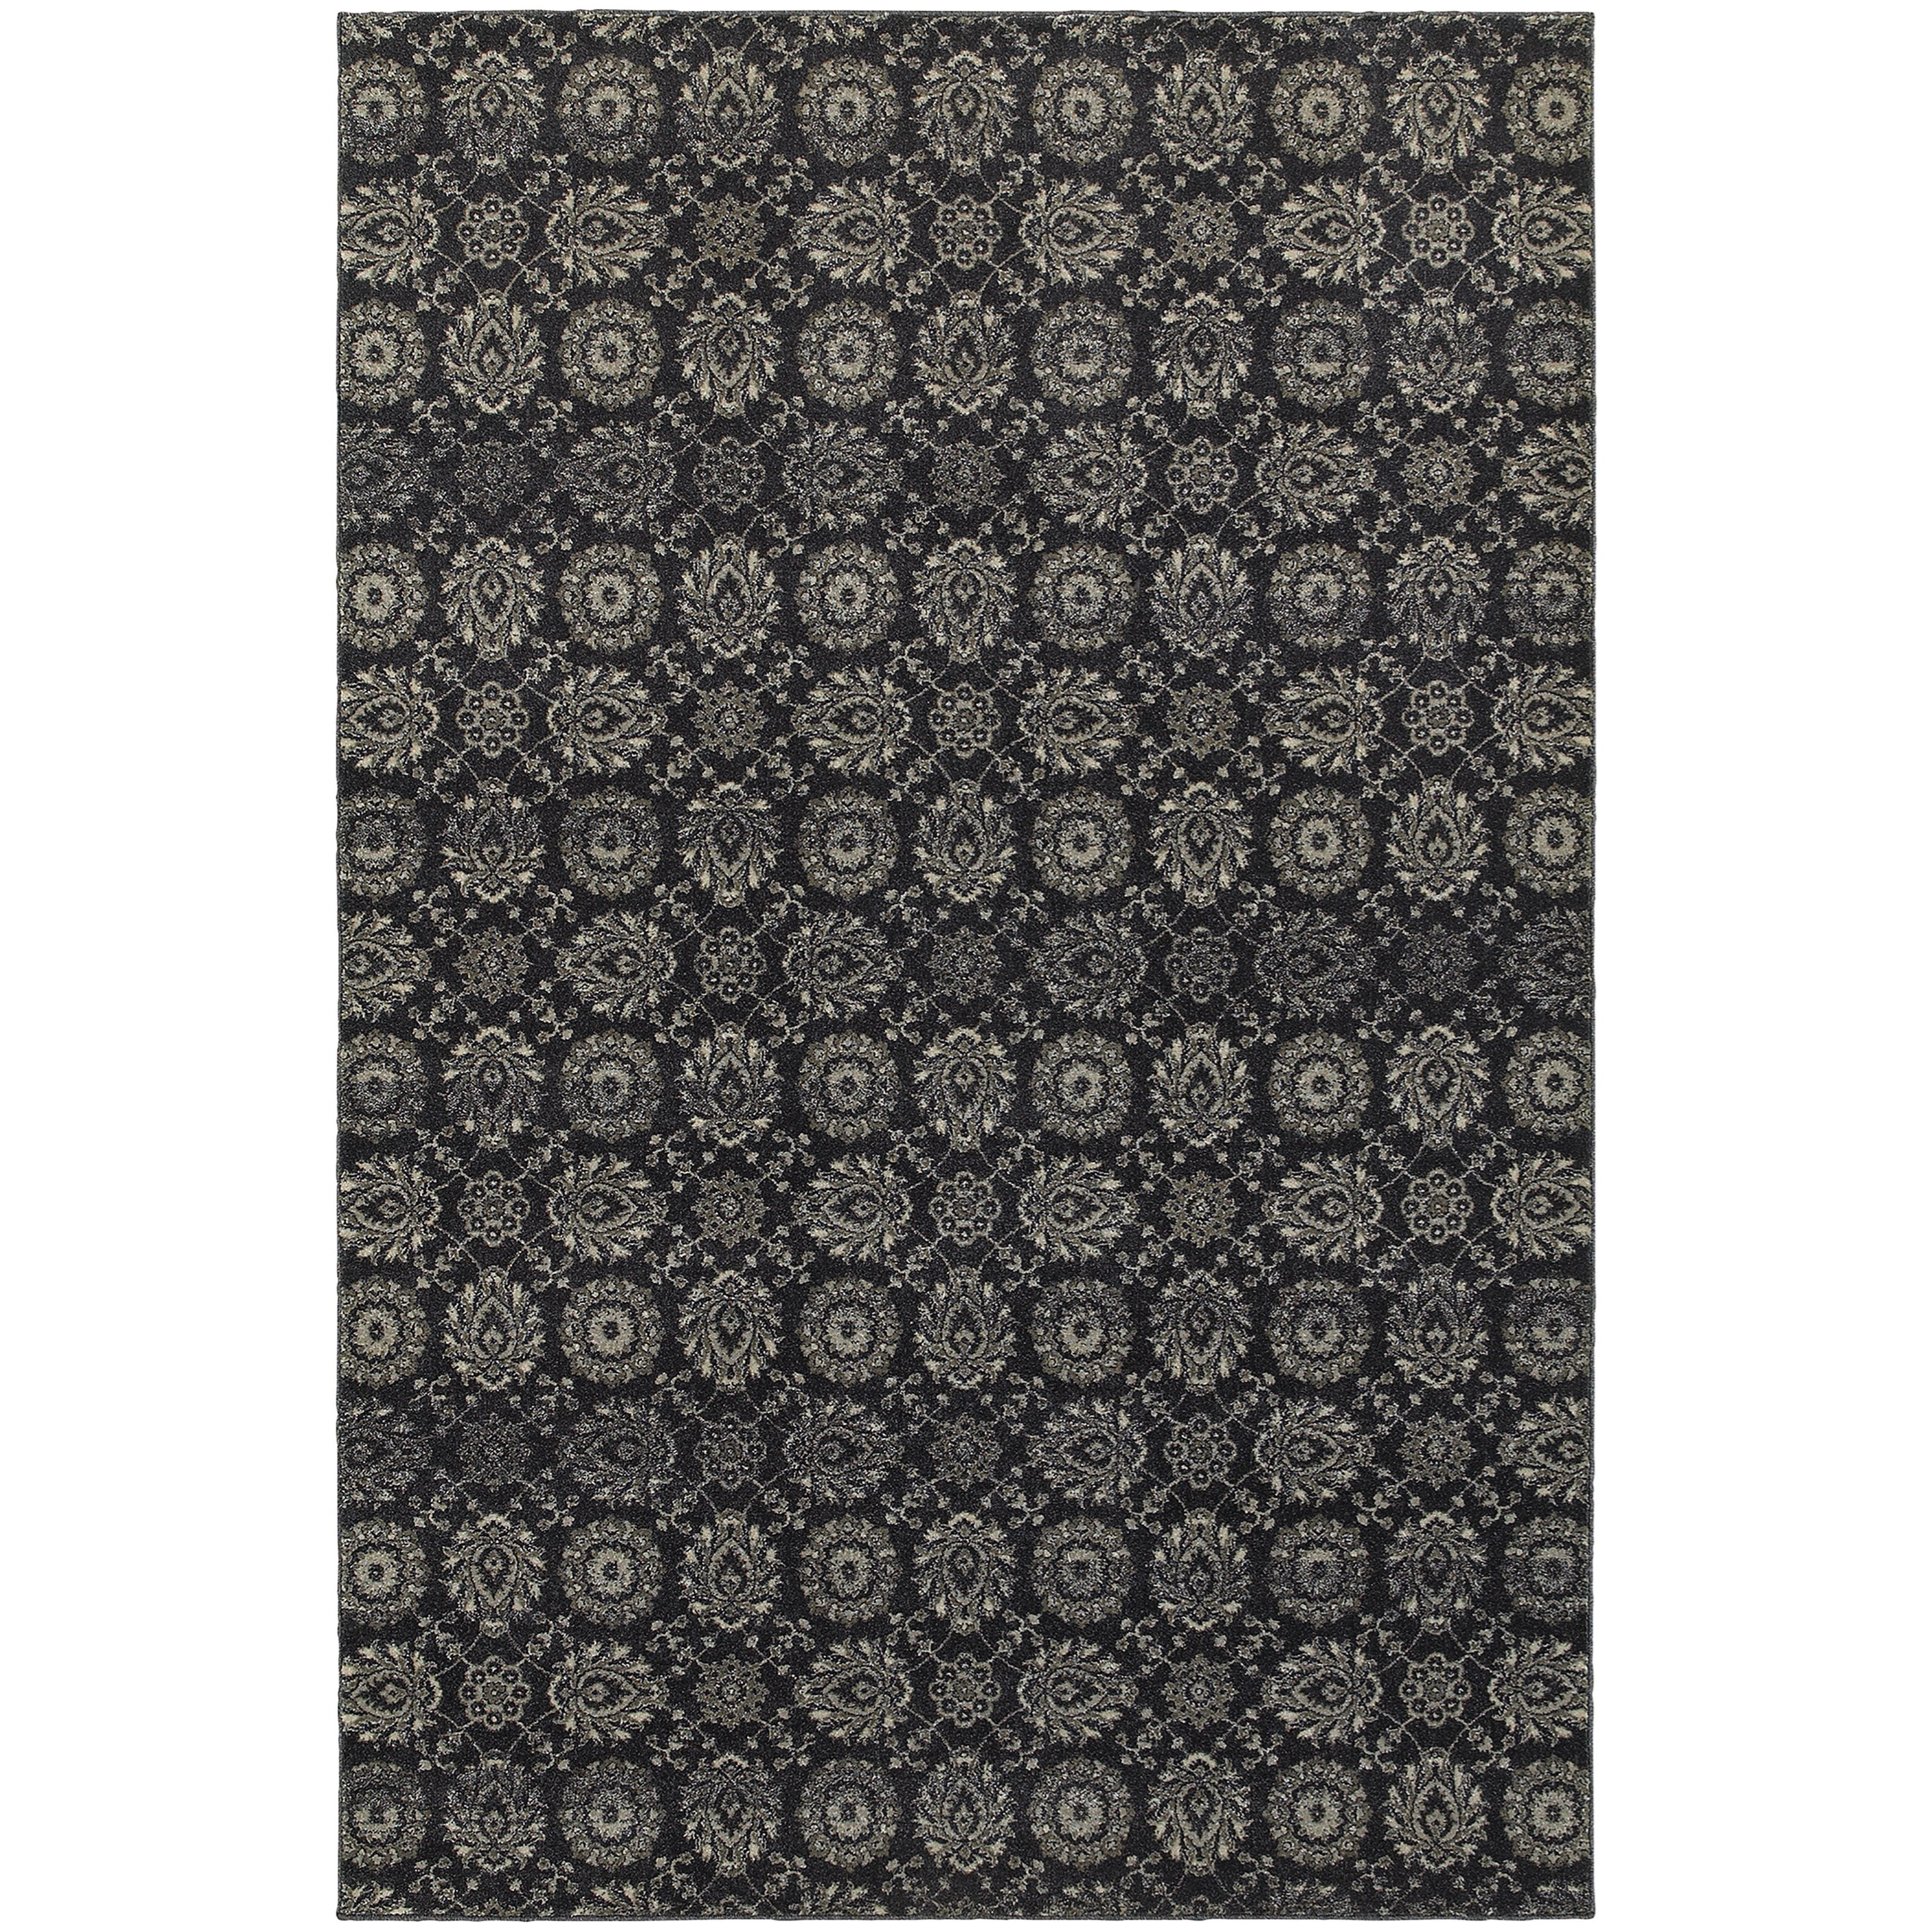 "Richmond 3'10"" X  5' 5"" Rectangle Area Rug by Oriental Weavers at Steger's Furniture"